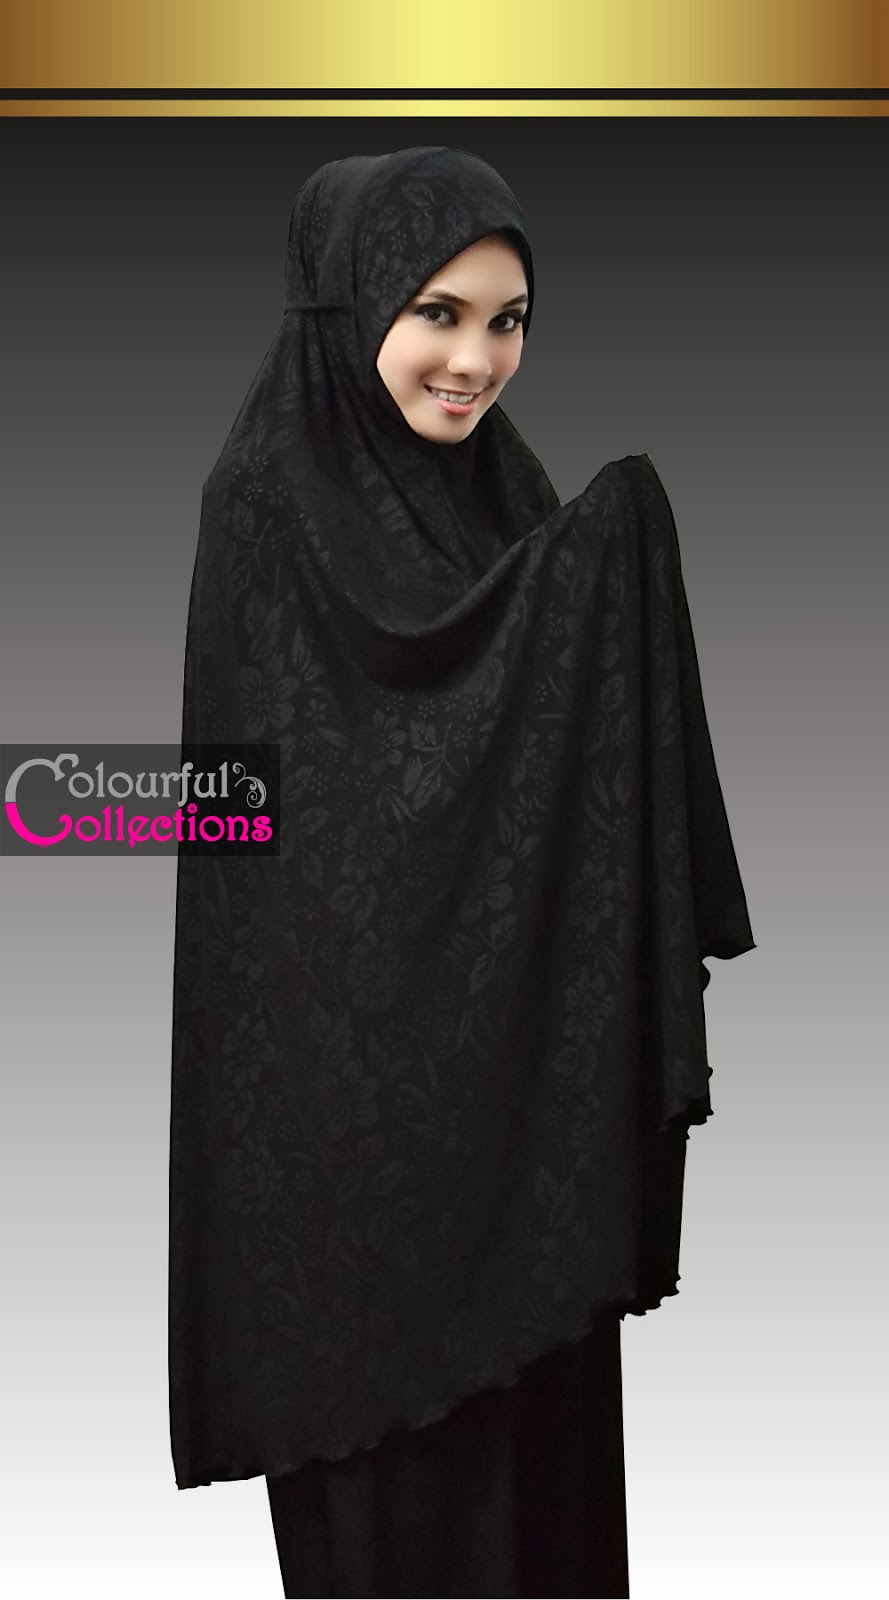 http://www.colourfulcollections.com/search/label/TELEKUNG%20AISYAH